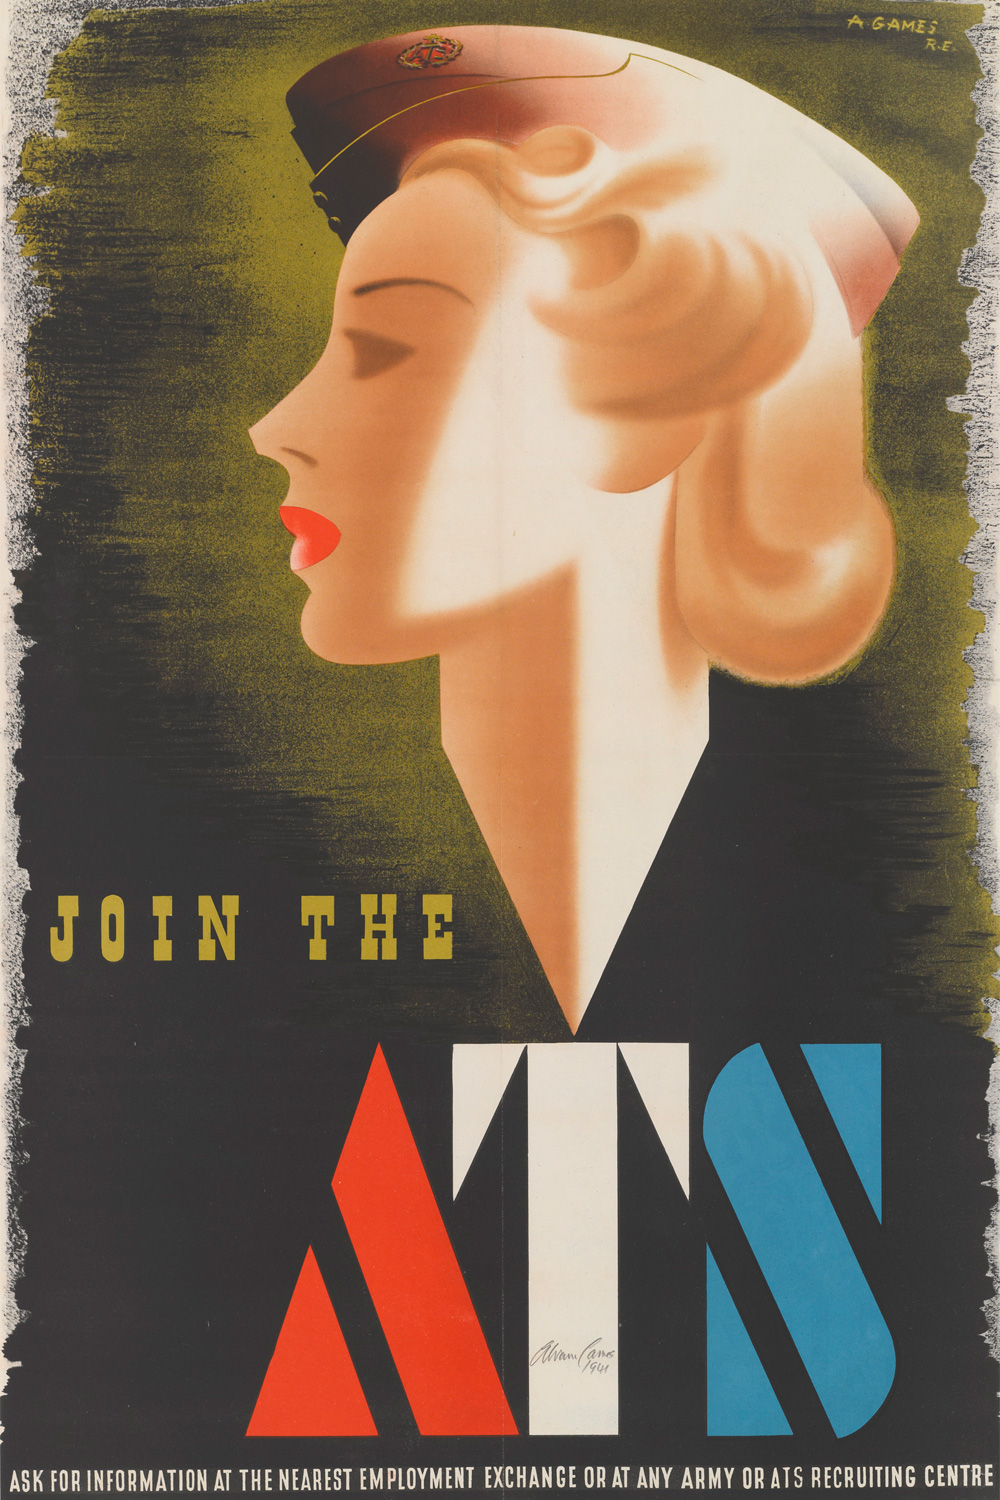 'Join the ATS', recruiting poster, 1941